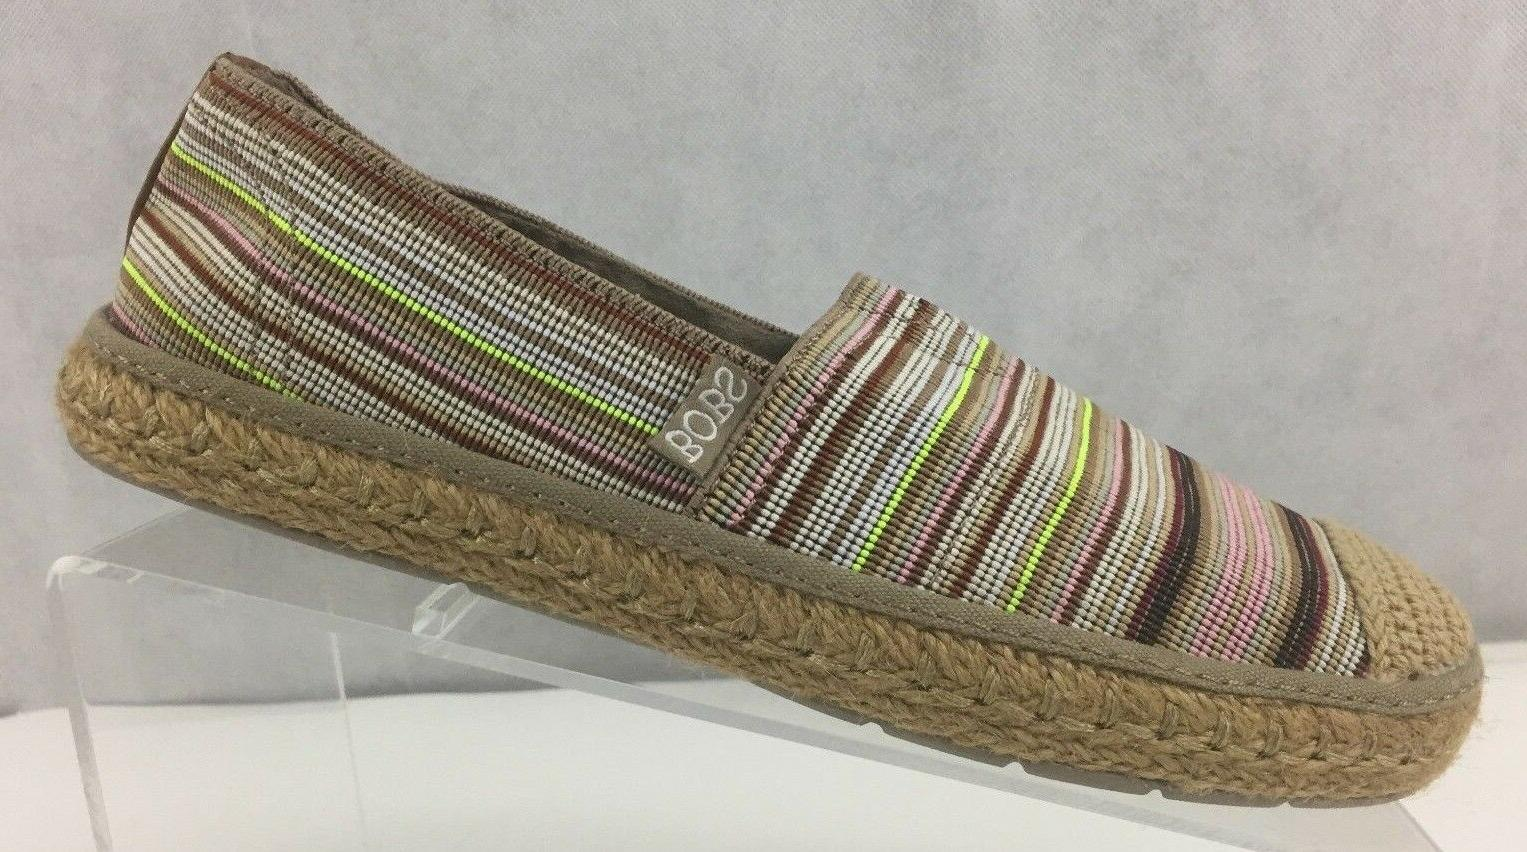 SKECHERS WOMENS BOBS DOGS CABANA MULTI COLOR US 7M 37